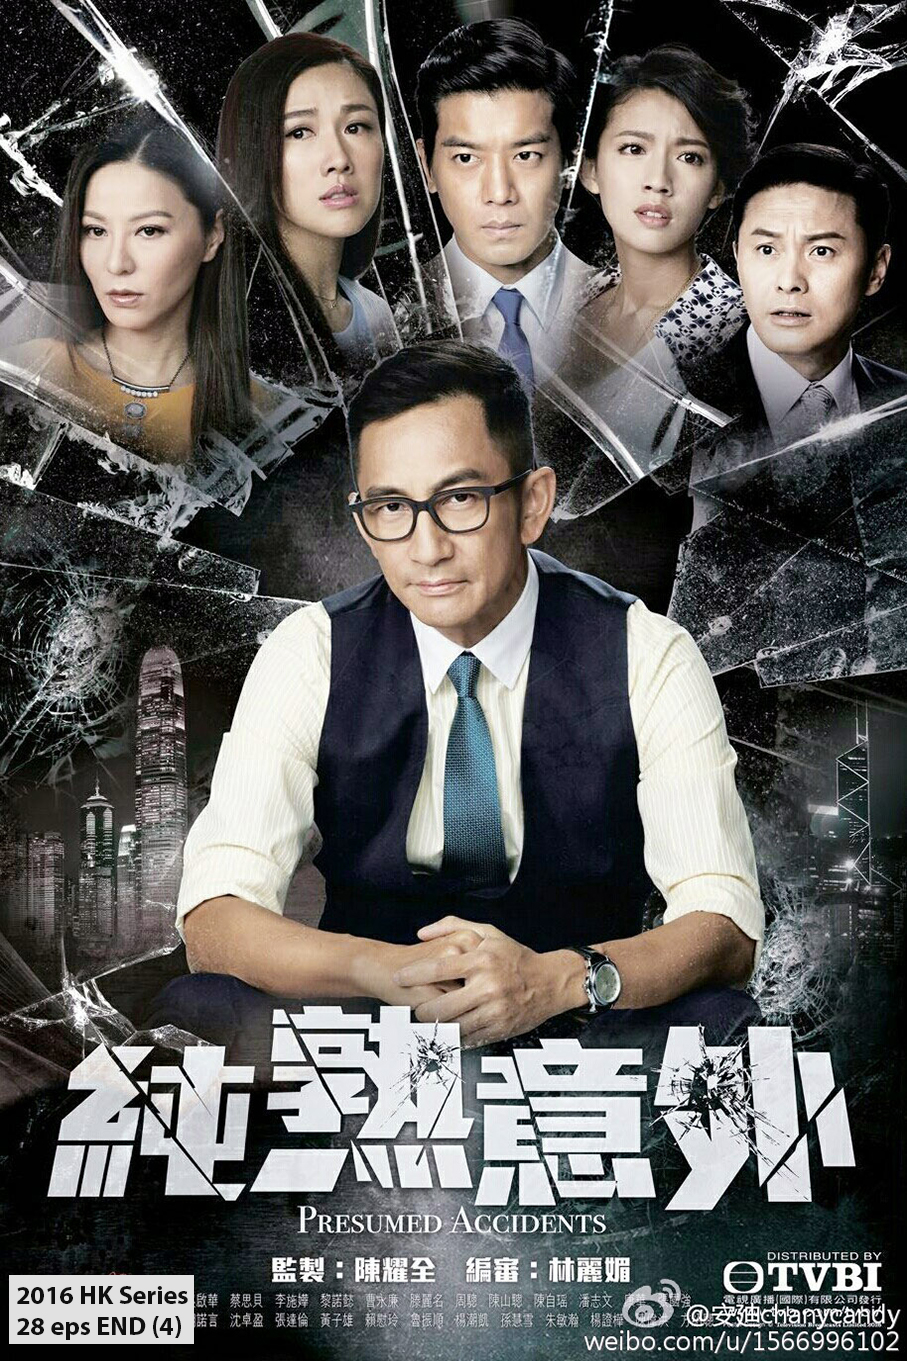 Presumed Accidents [2016 HK Series] 28 eps END (4)